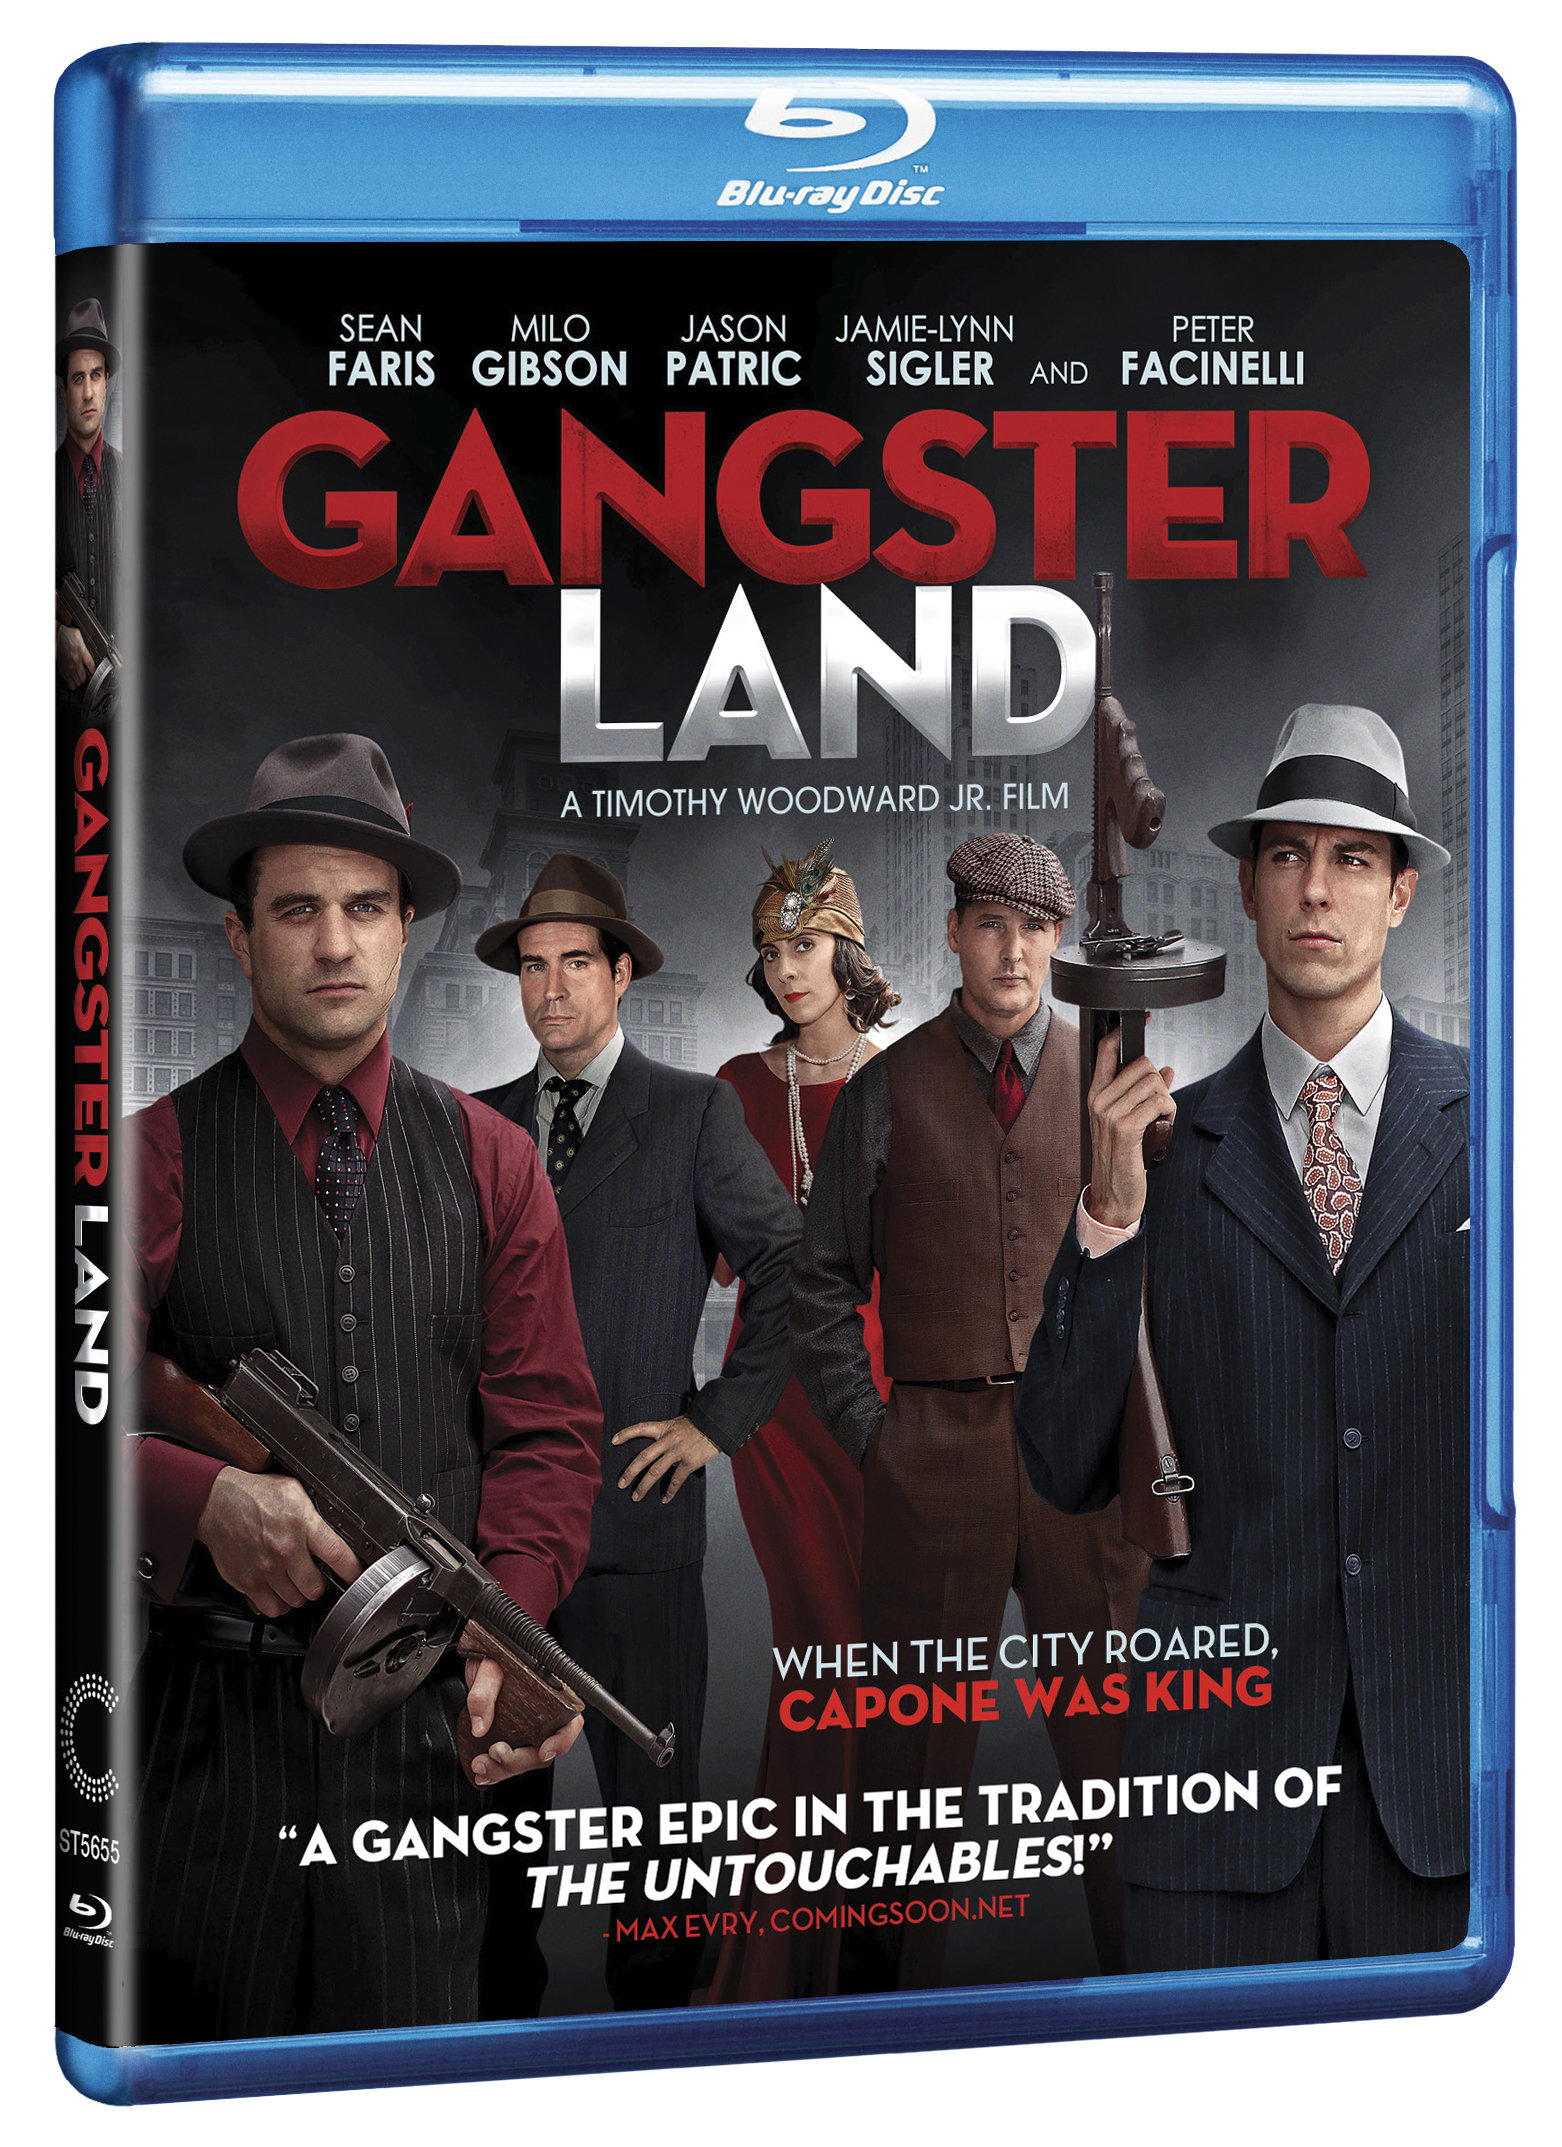 Gangster Land Blu-ray Review